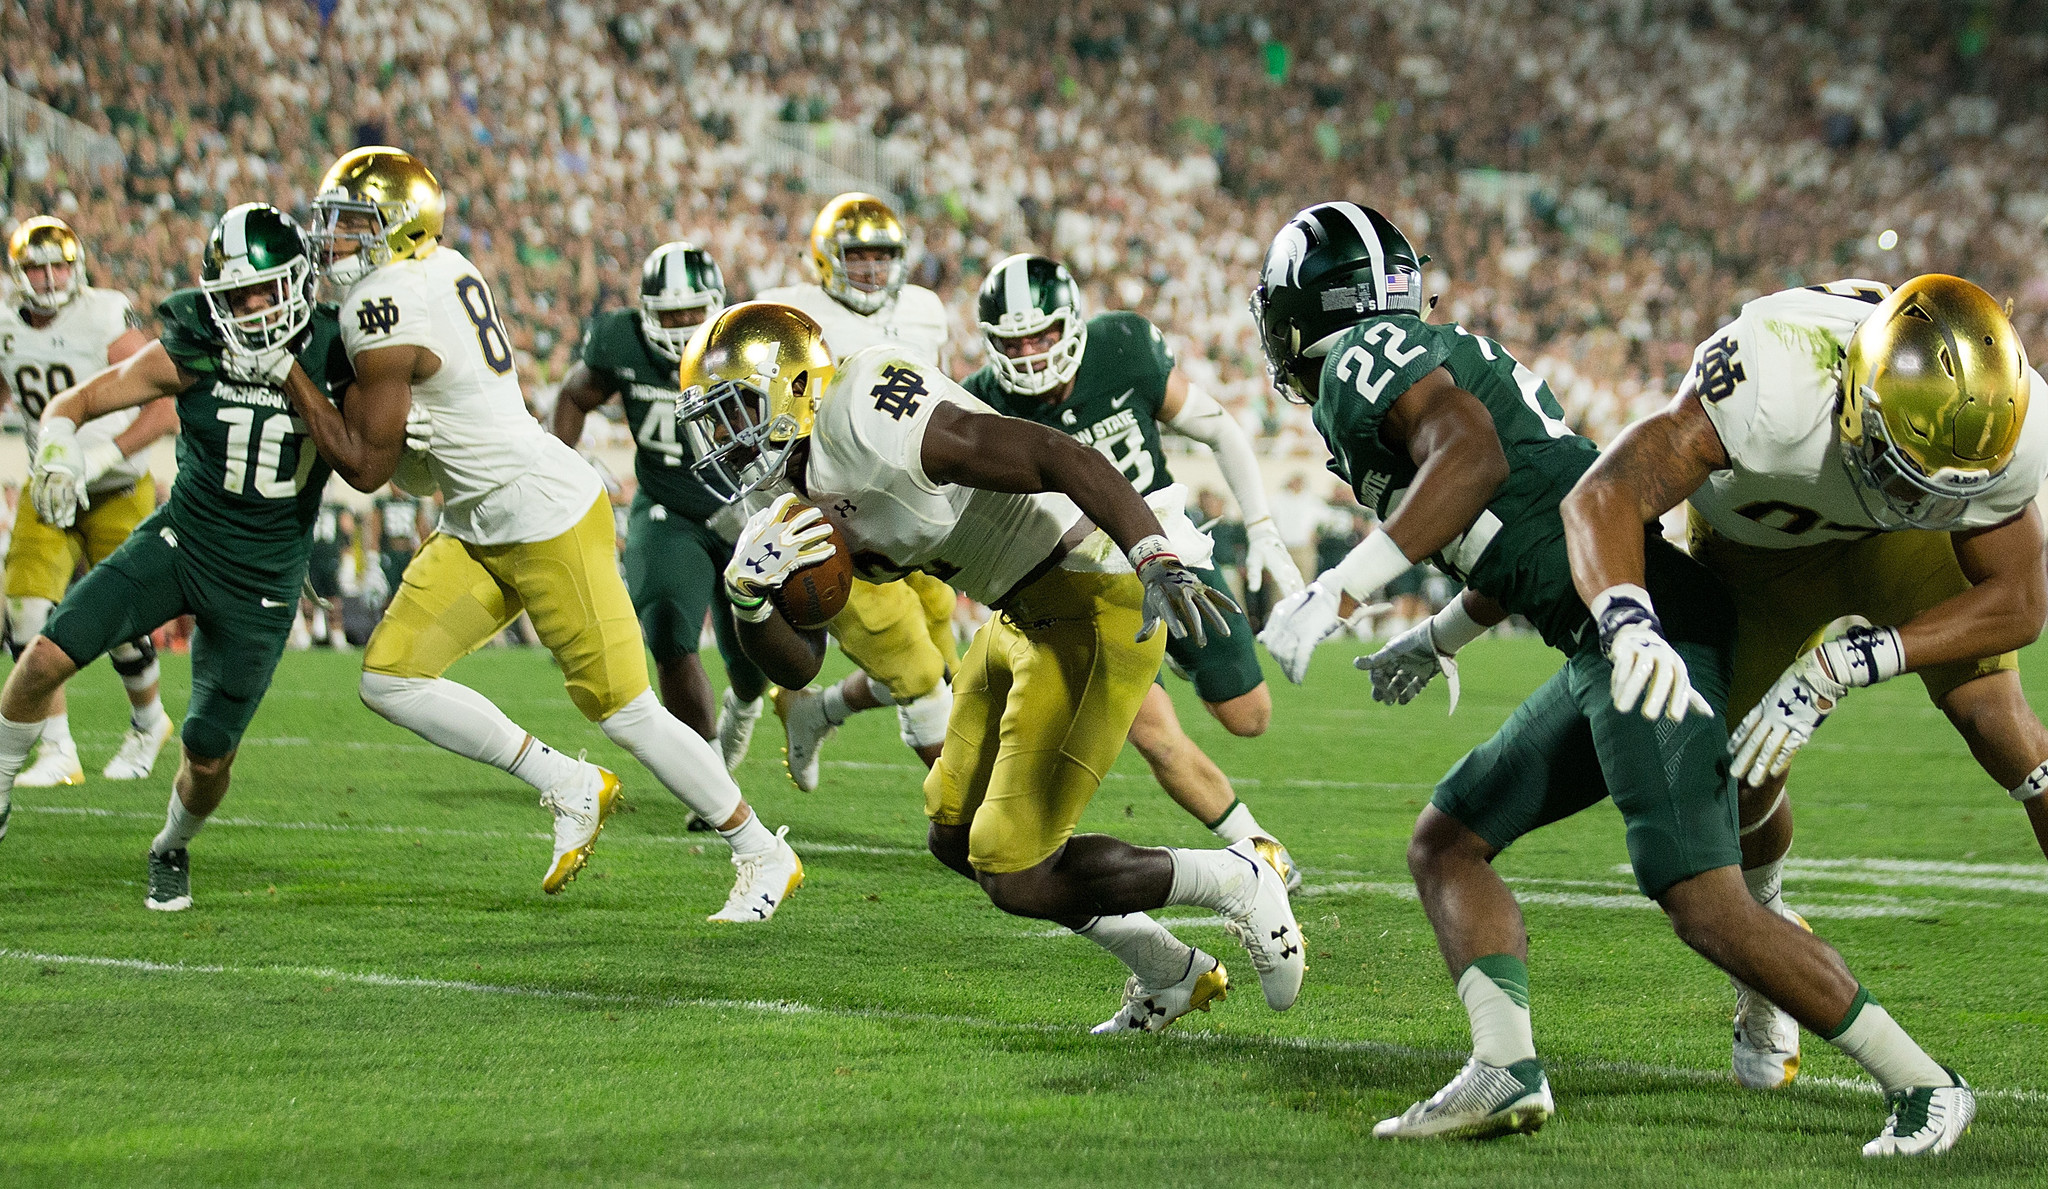 Ct-notre-dame-michigan-state-photos-20170923